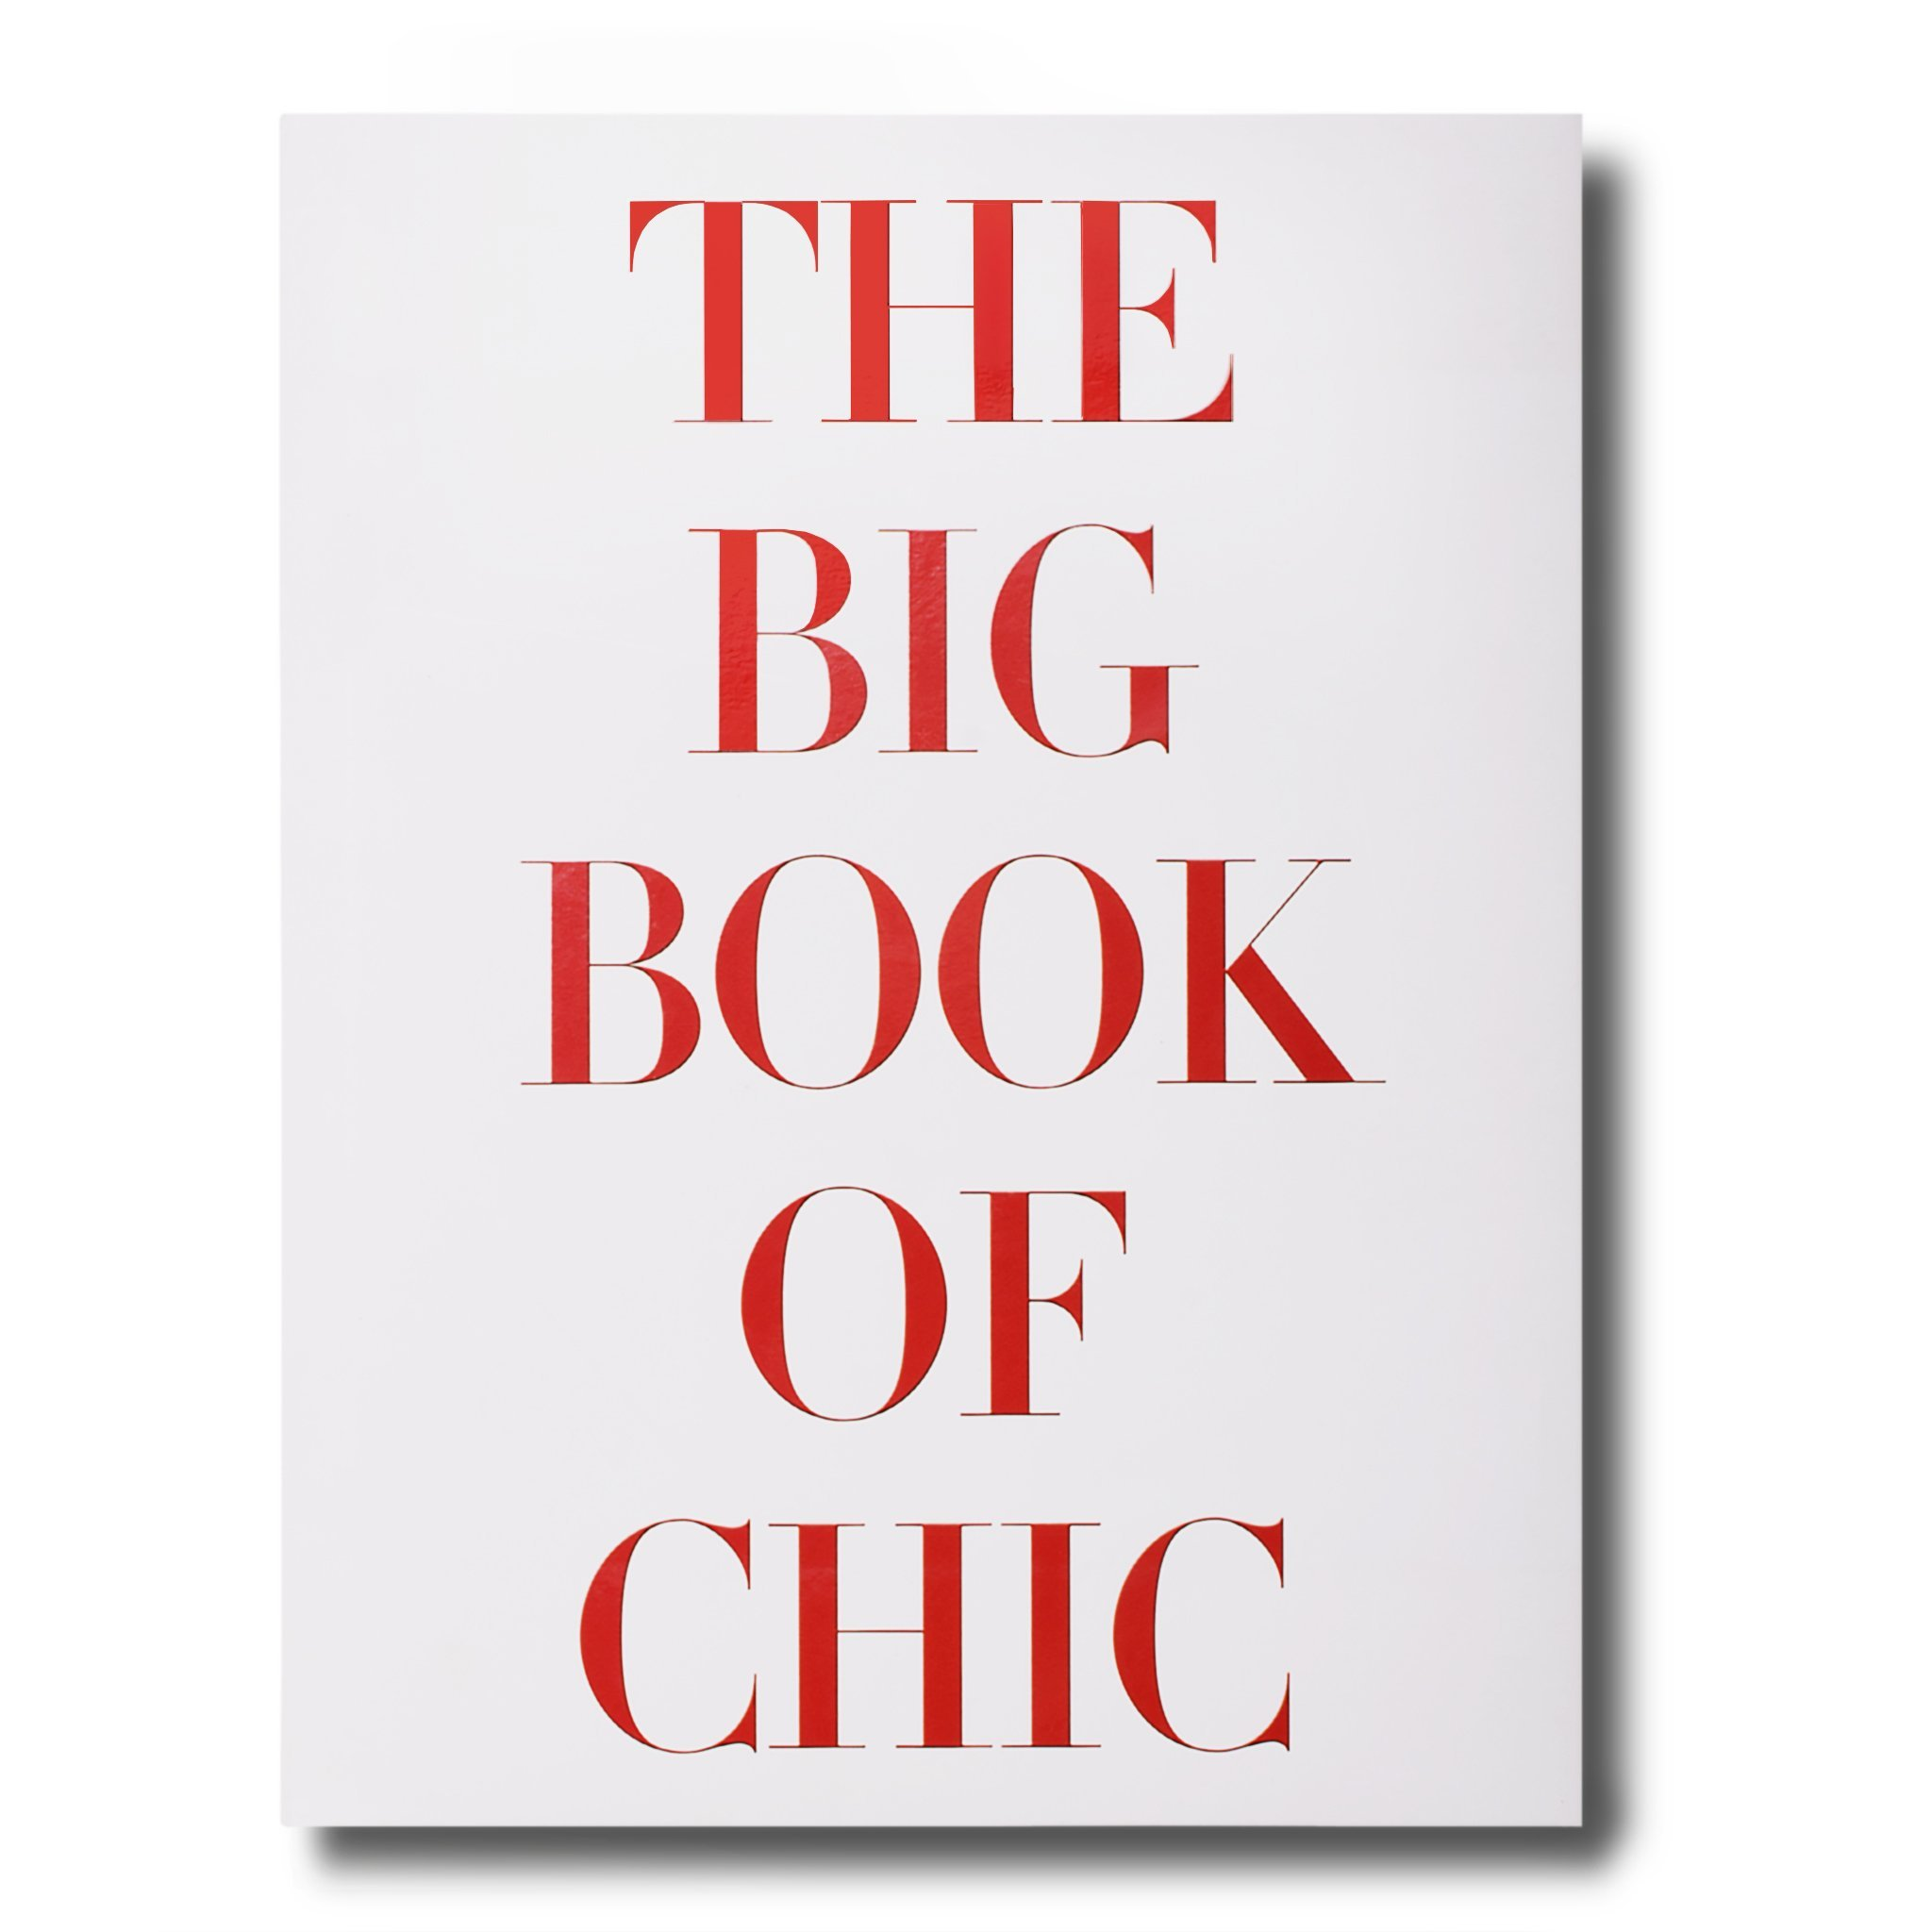 The BigBook of Chic by Miles Redd